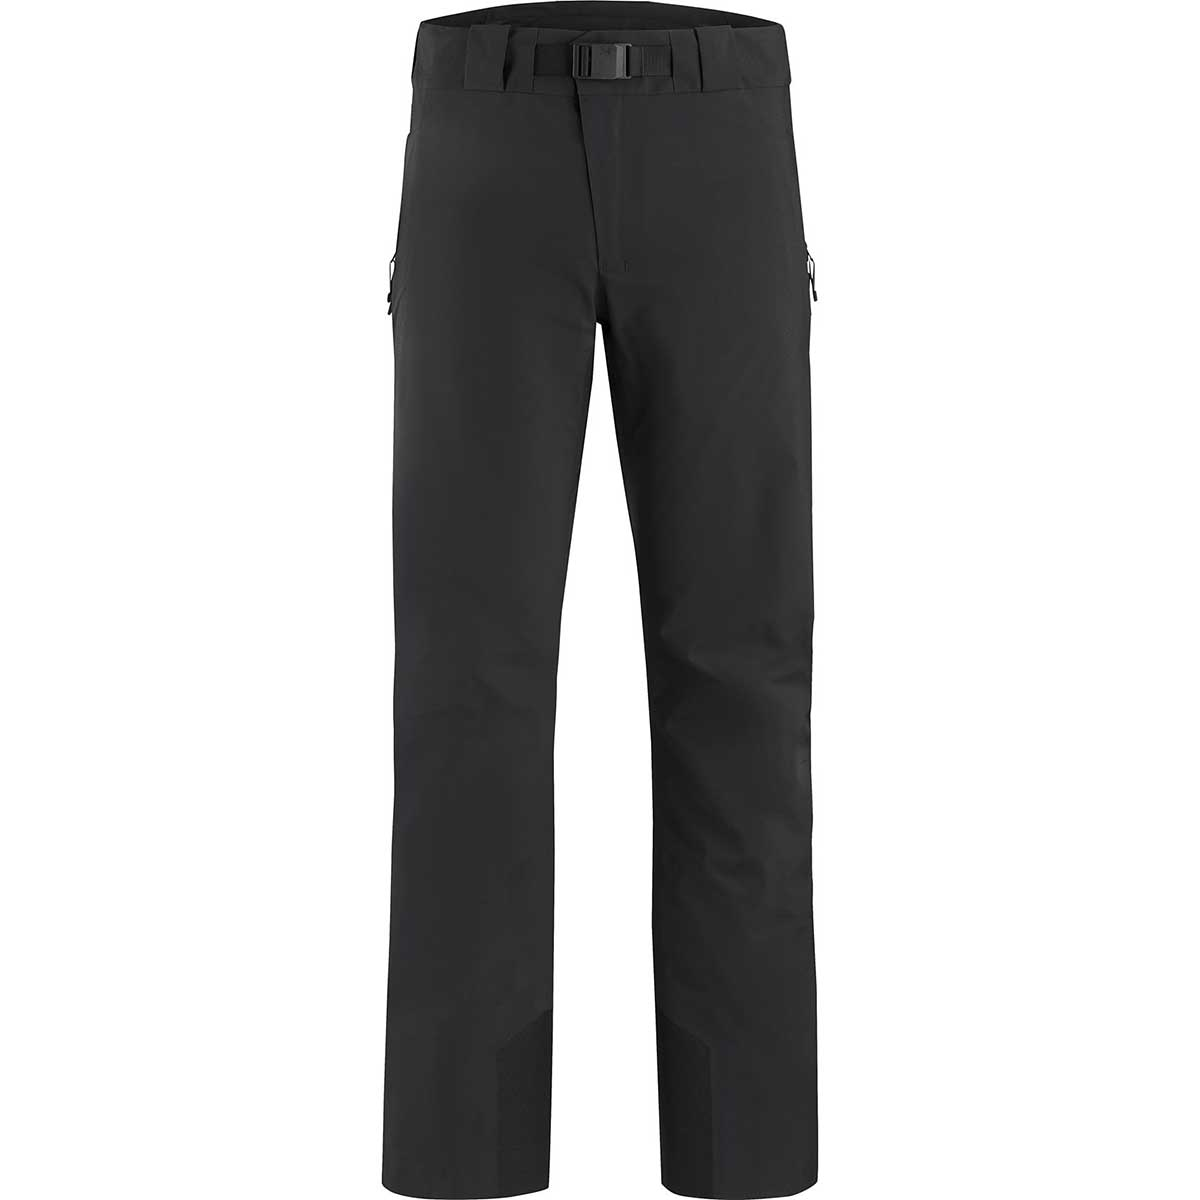 Arcteryx men's Macai Pant in Black front view